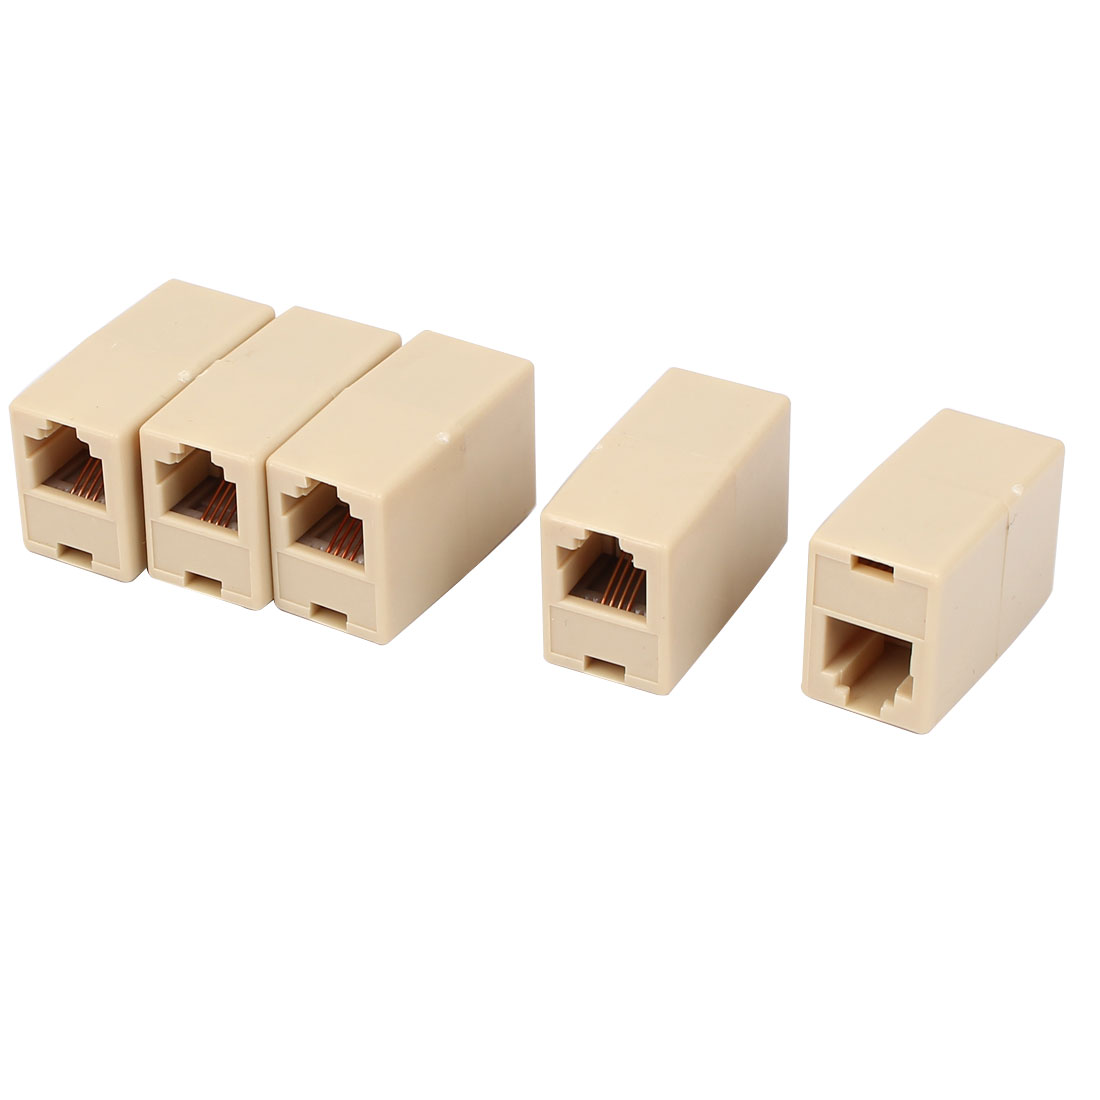 Plastic RJ11 8P4C Female/Female Telephone Cable Inline Connector Beige 5 Pcs